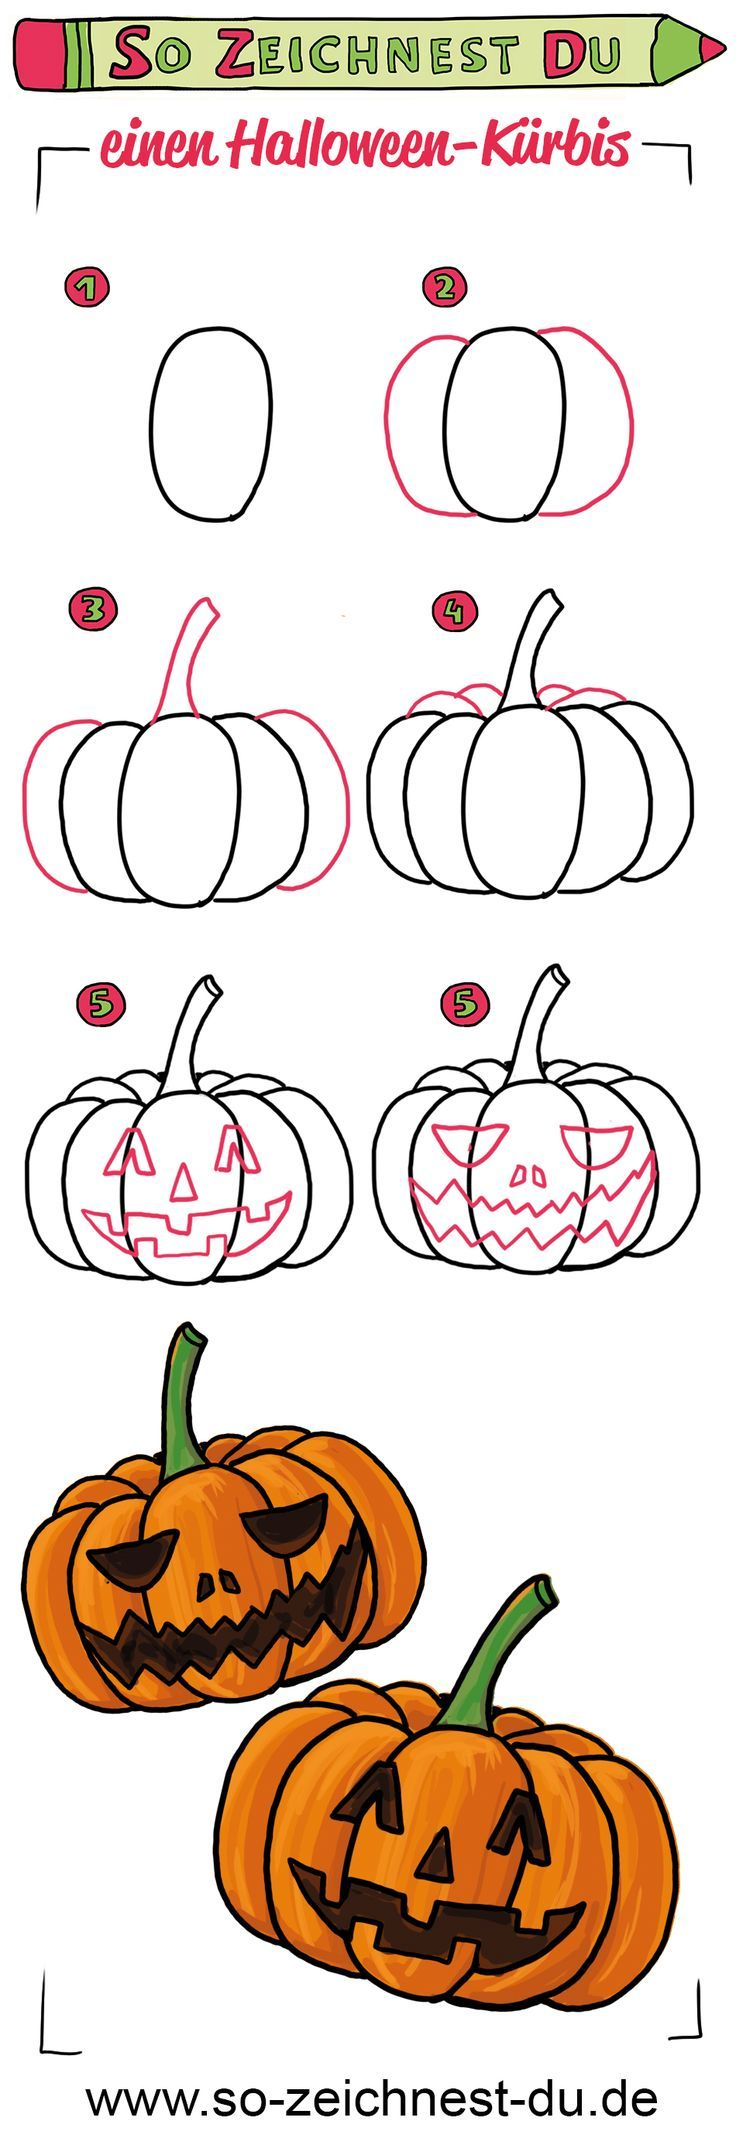 How to draw a Halloween pumpkin. It's easy with our drawing school …